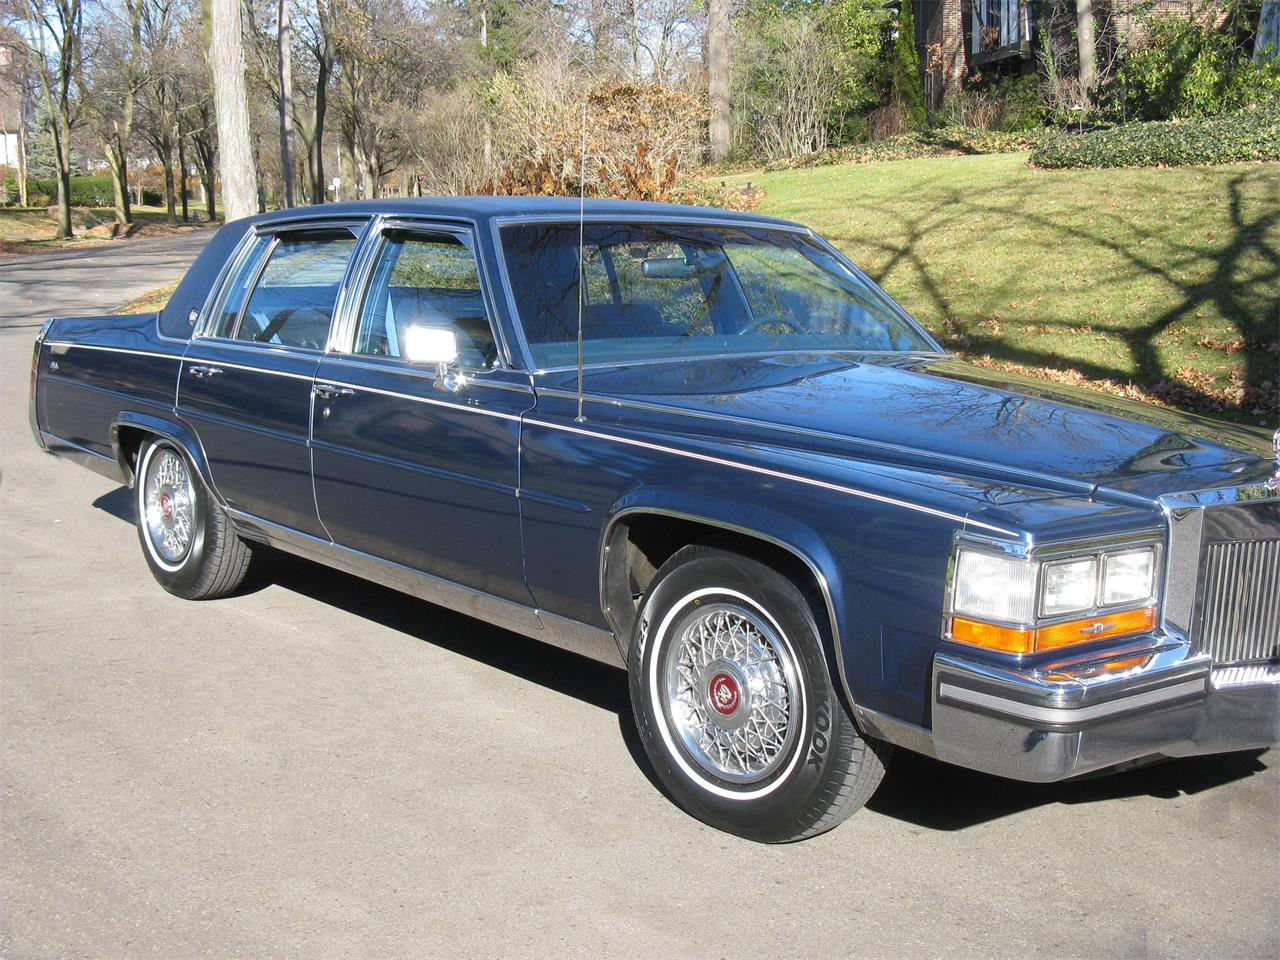 Large Picture of 1989 Cadillac Brougham located in Shaker Heights Ohio - $15,500.00 - MEKB